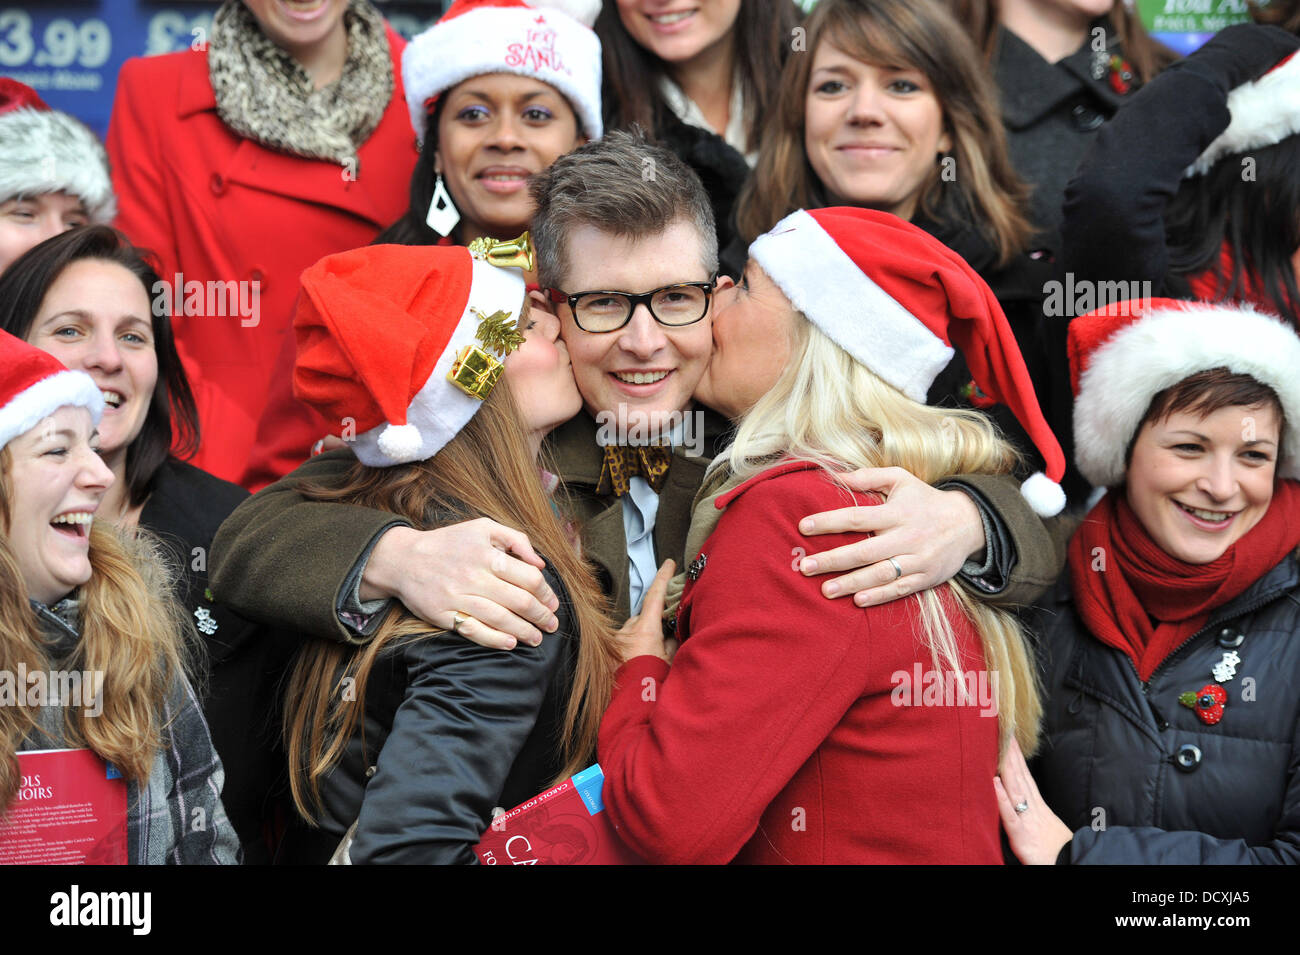 Gareth Malone Choir High Resolution Stock Photography and Images - Alamy